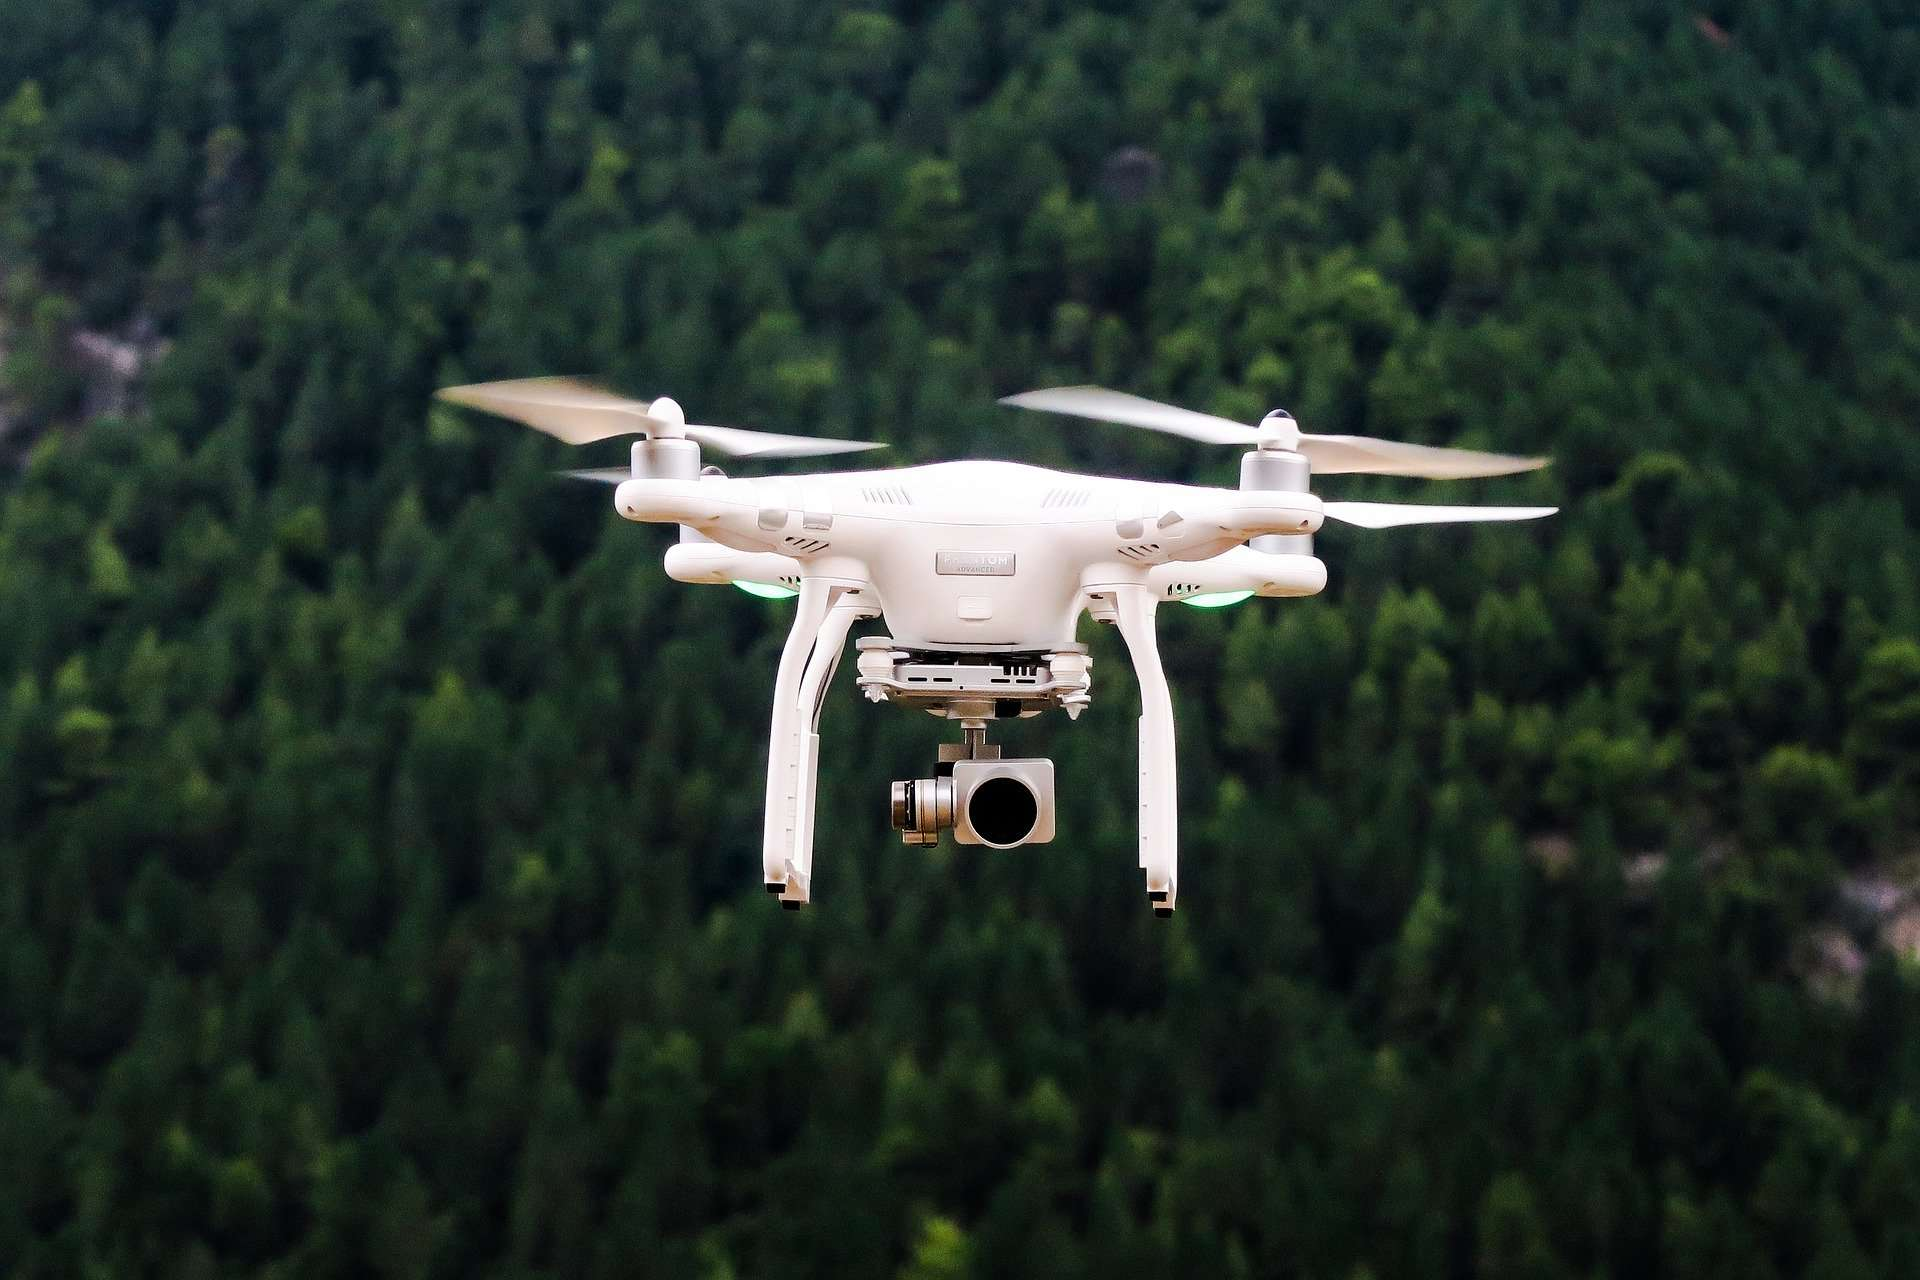 10 major pros and cons of unmanned aerial vehicles (UAV) | ADVANTAGES & DISADVANTAGES OF DRONES